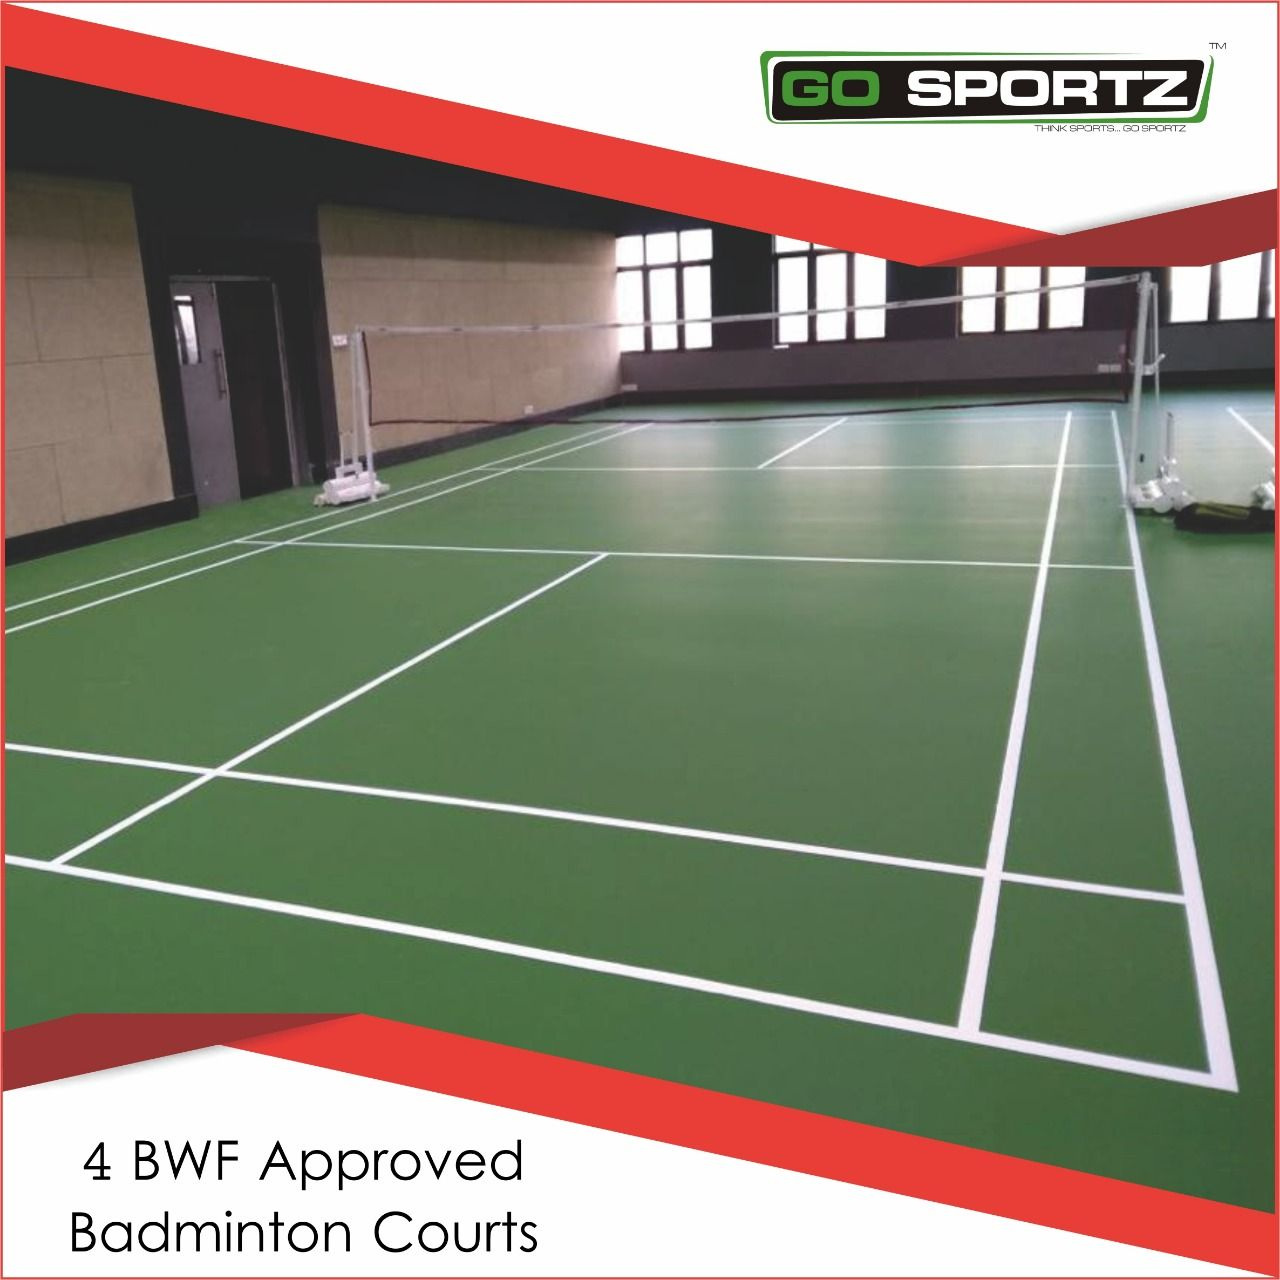 Go Sportz completed 4 Badminton Courts with the BWF